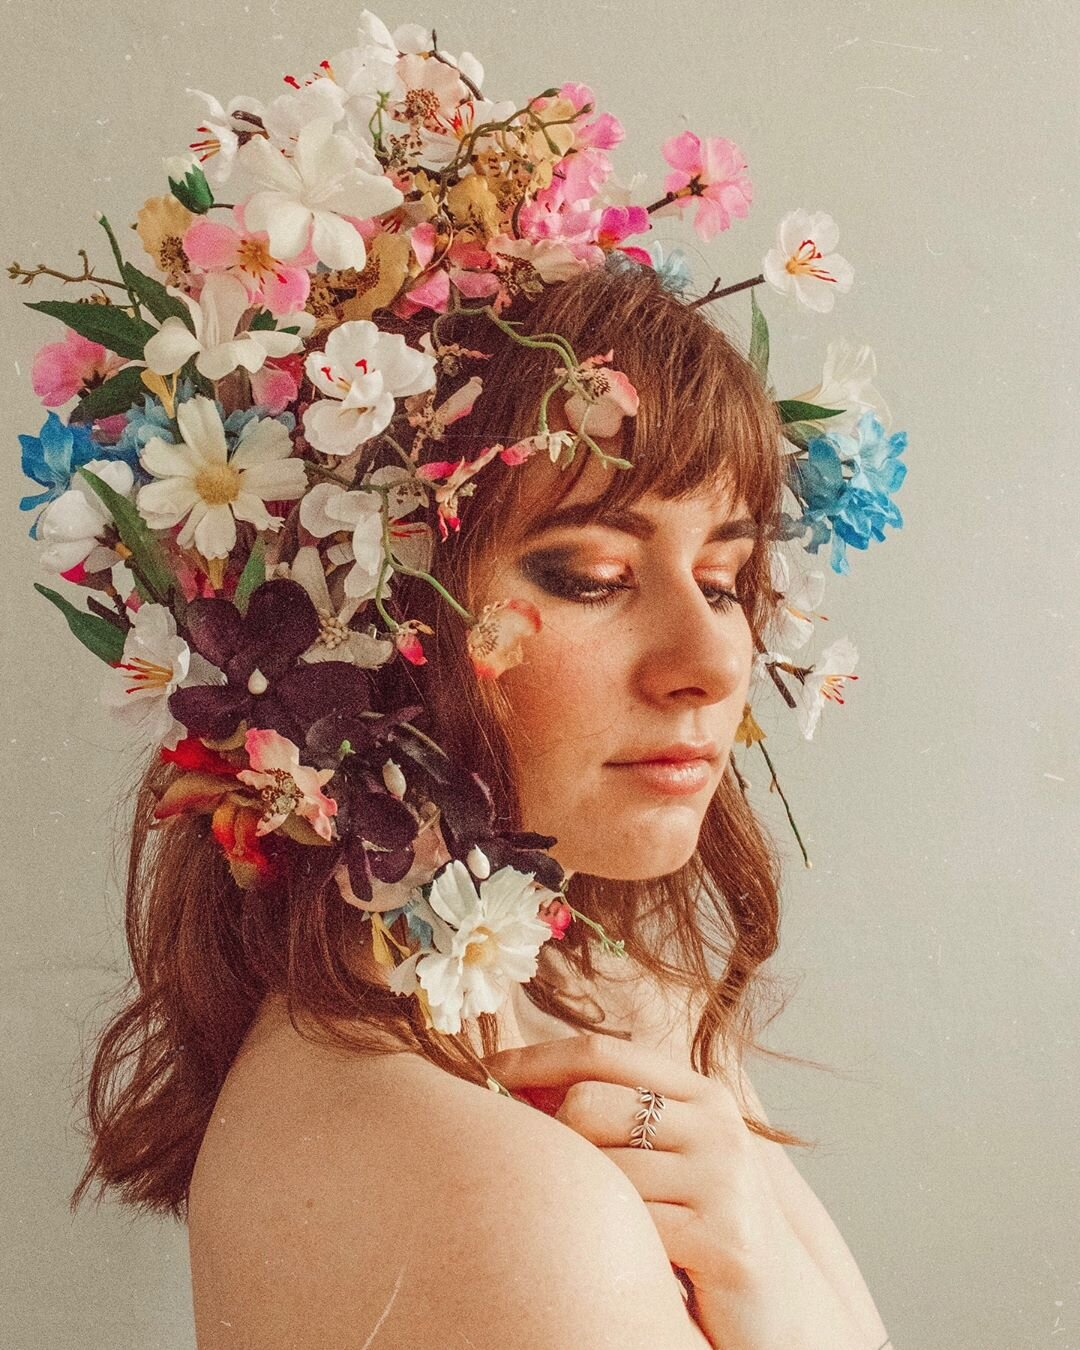 A beautiful flower crowned self portrait by Bronte. Source:  @frombeewithlove